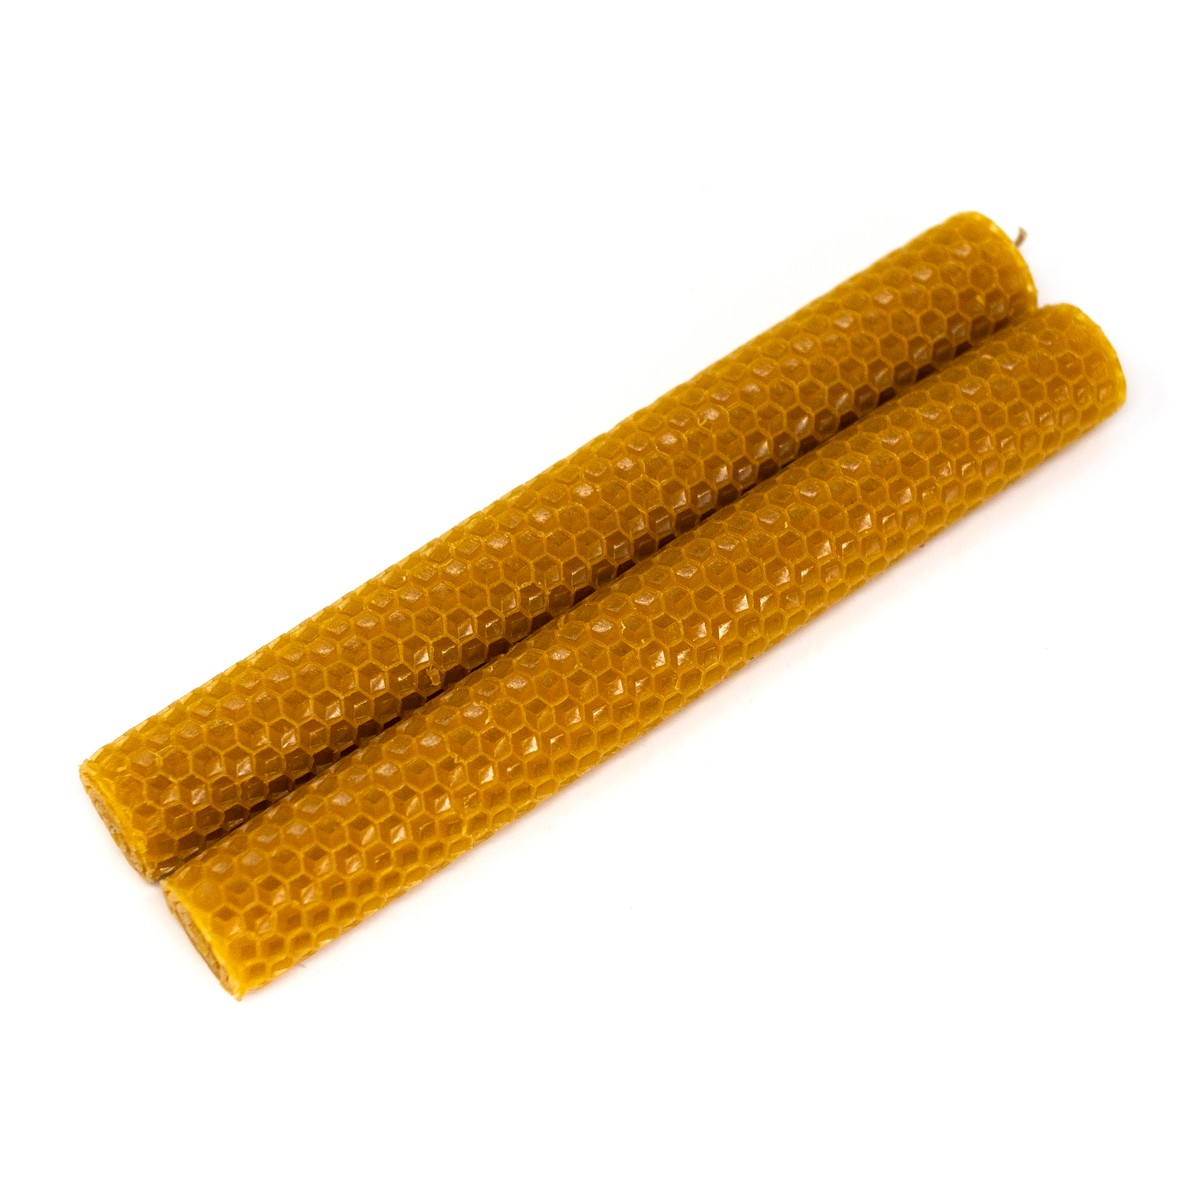 Photo of Hand Rolled Beeswax Candles Large